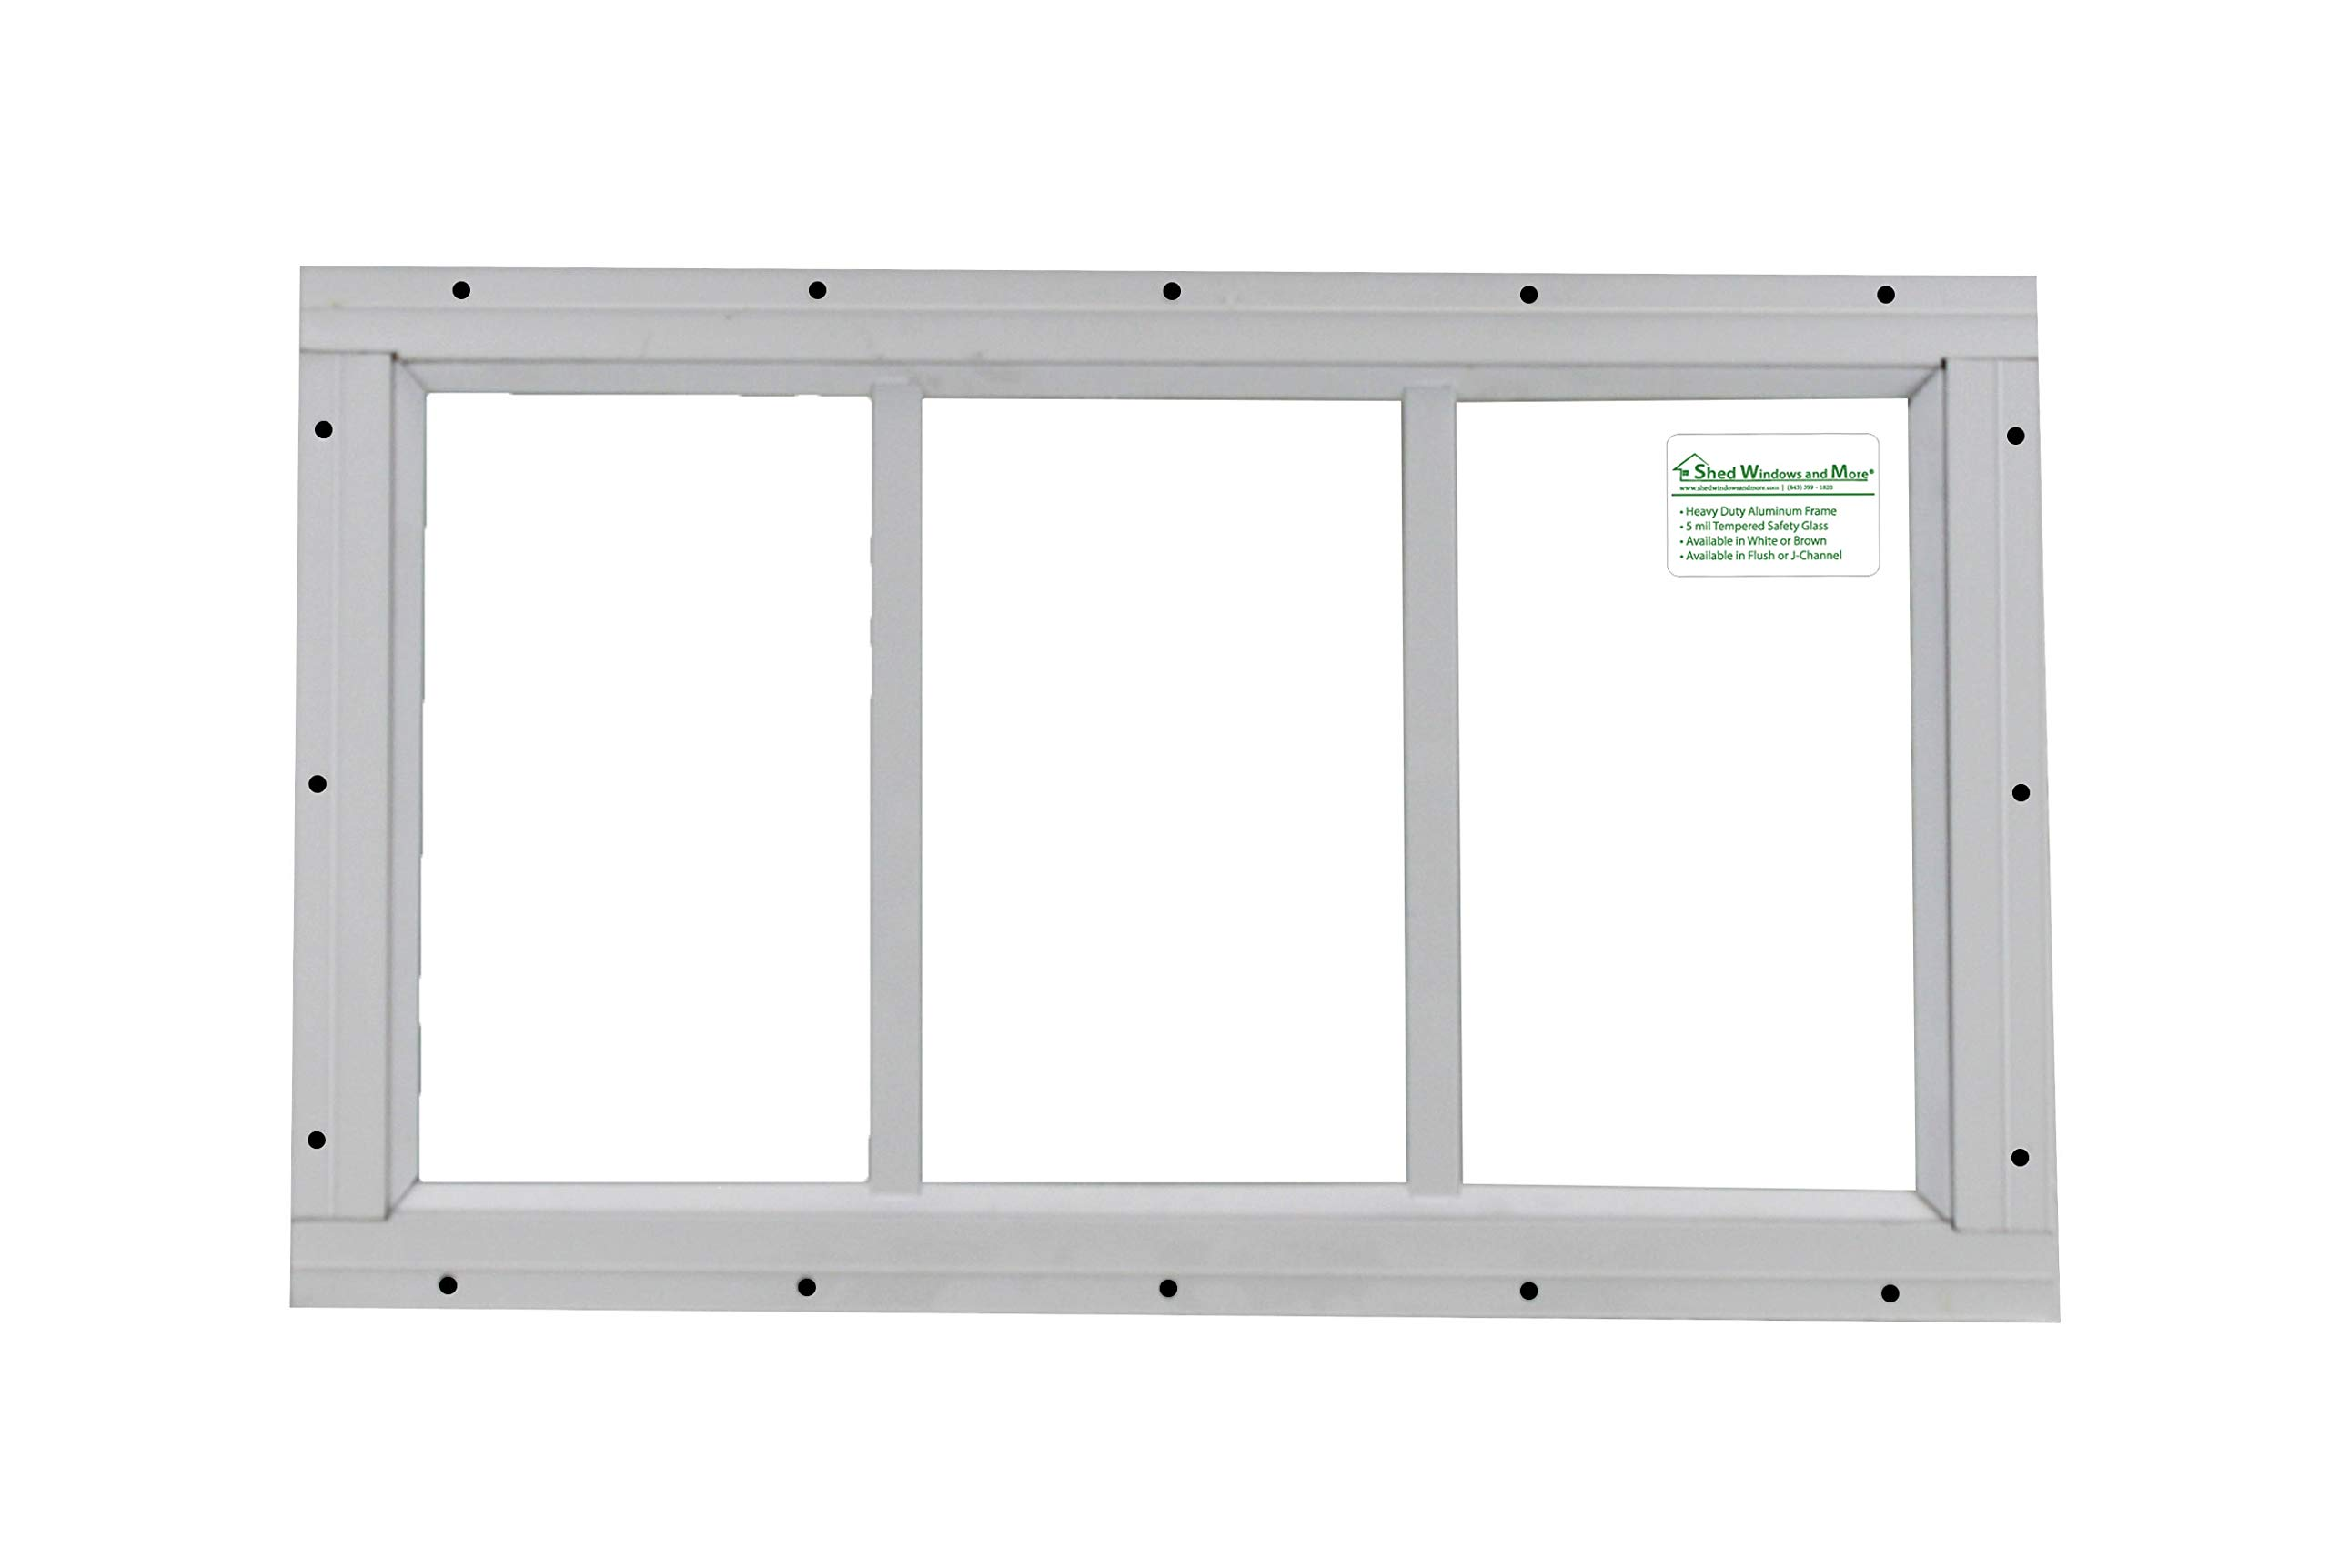 Shed Transom Window 10'' X 18'' White Flush Mount by Shed Windows and More